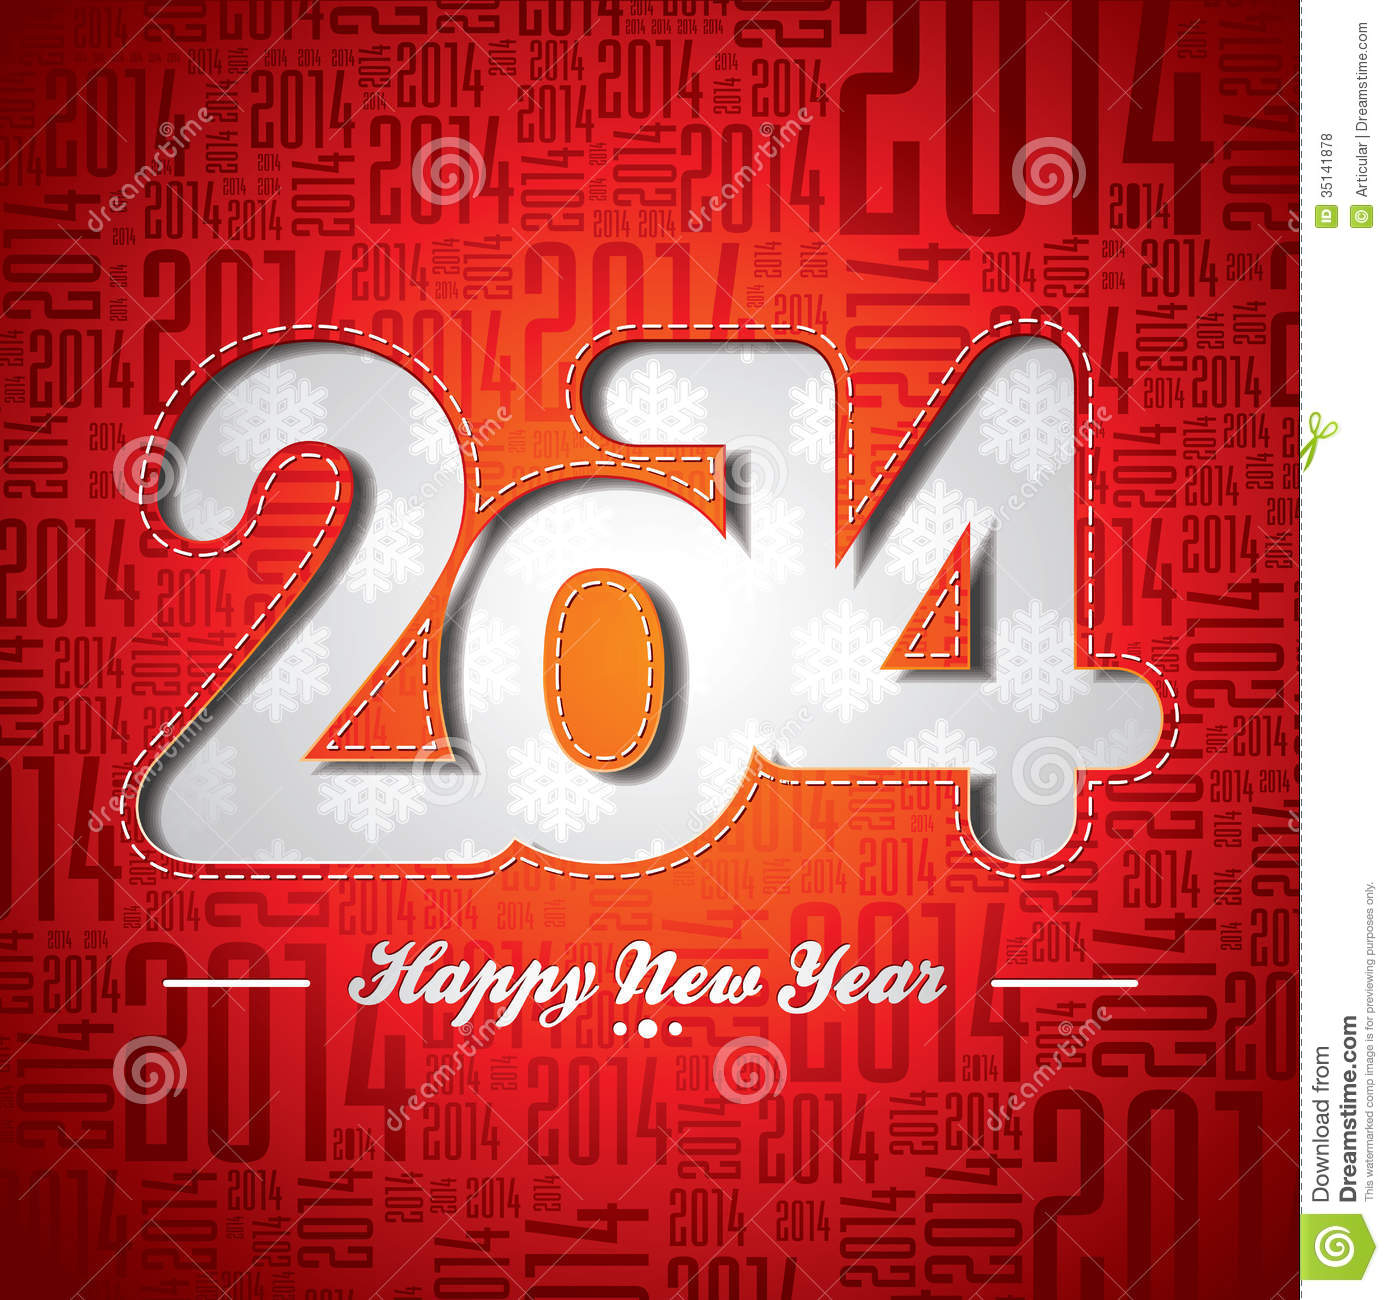 Vector Happy New Year 2014 celebration design on a typographic background